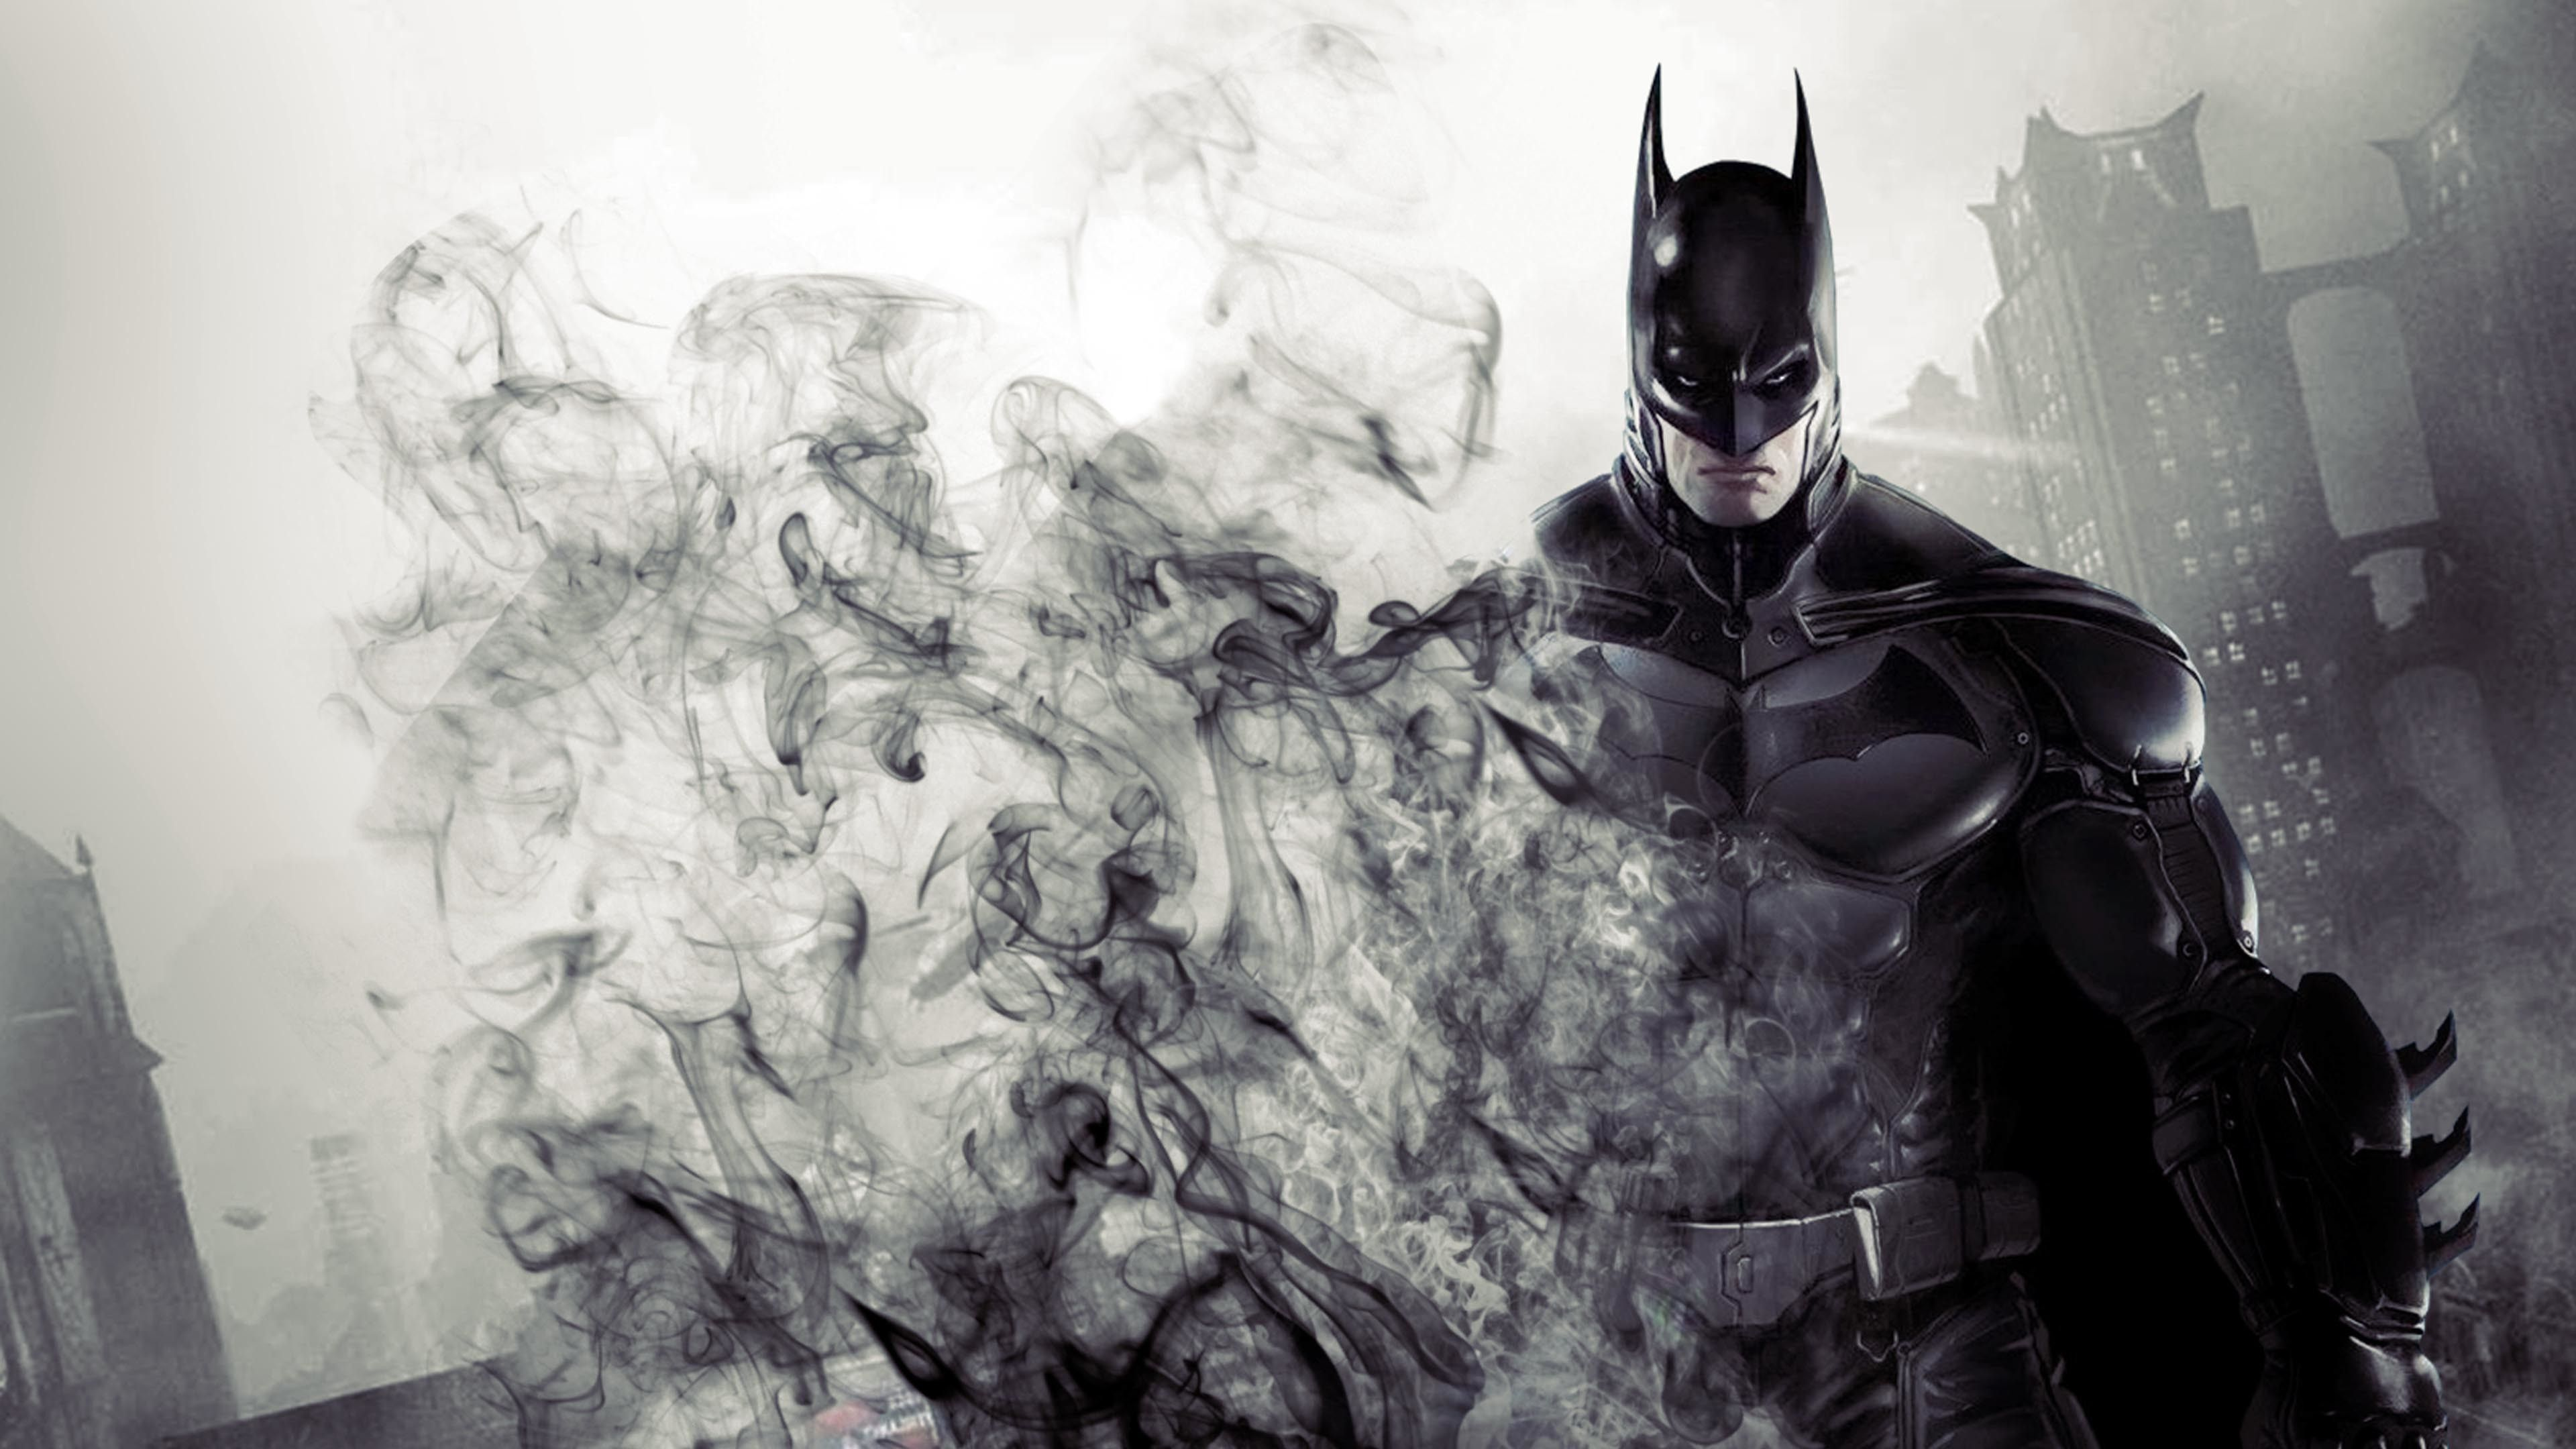 Batman 4k Wallpapers Top Free Batman 4k Backgrounds Wallpaperaccess